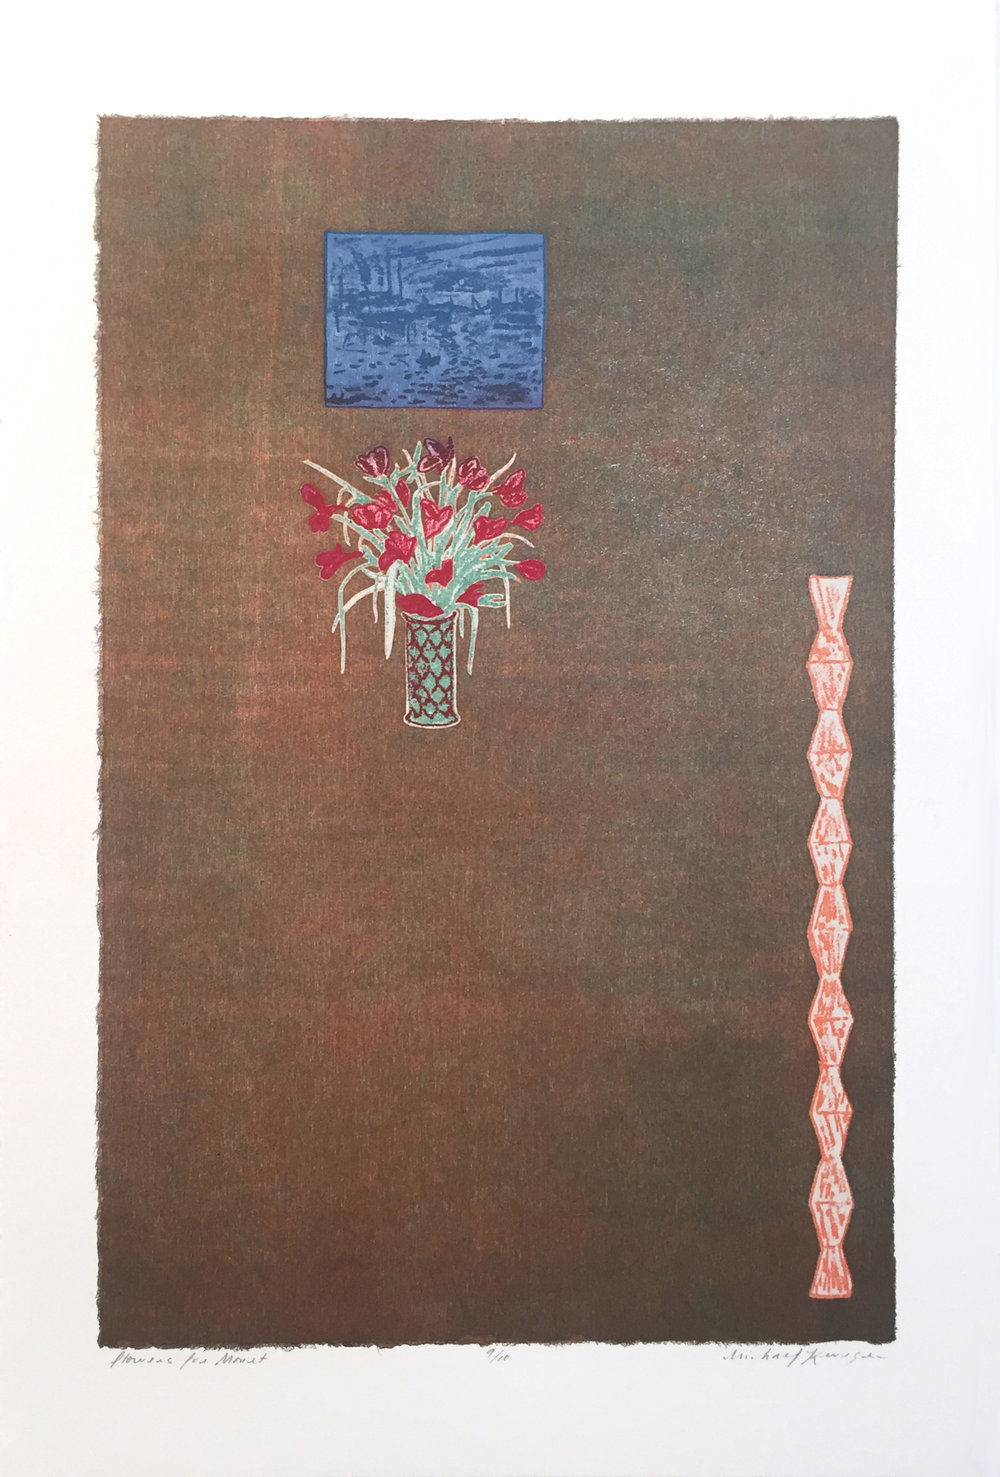 Flowers for Monet,  2017  Laser Woodcut and Chine Collé, 9.25 x 7 in. Edition: 20